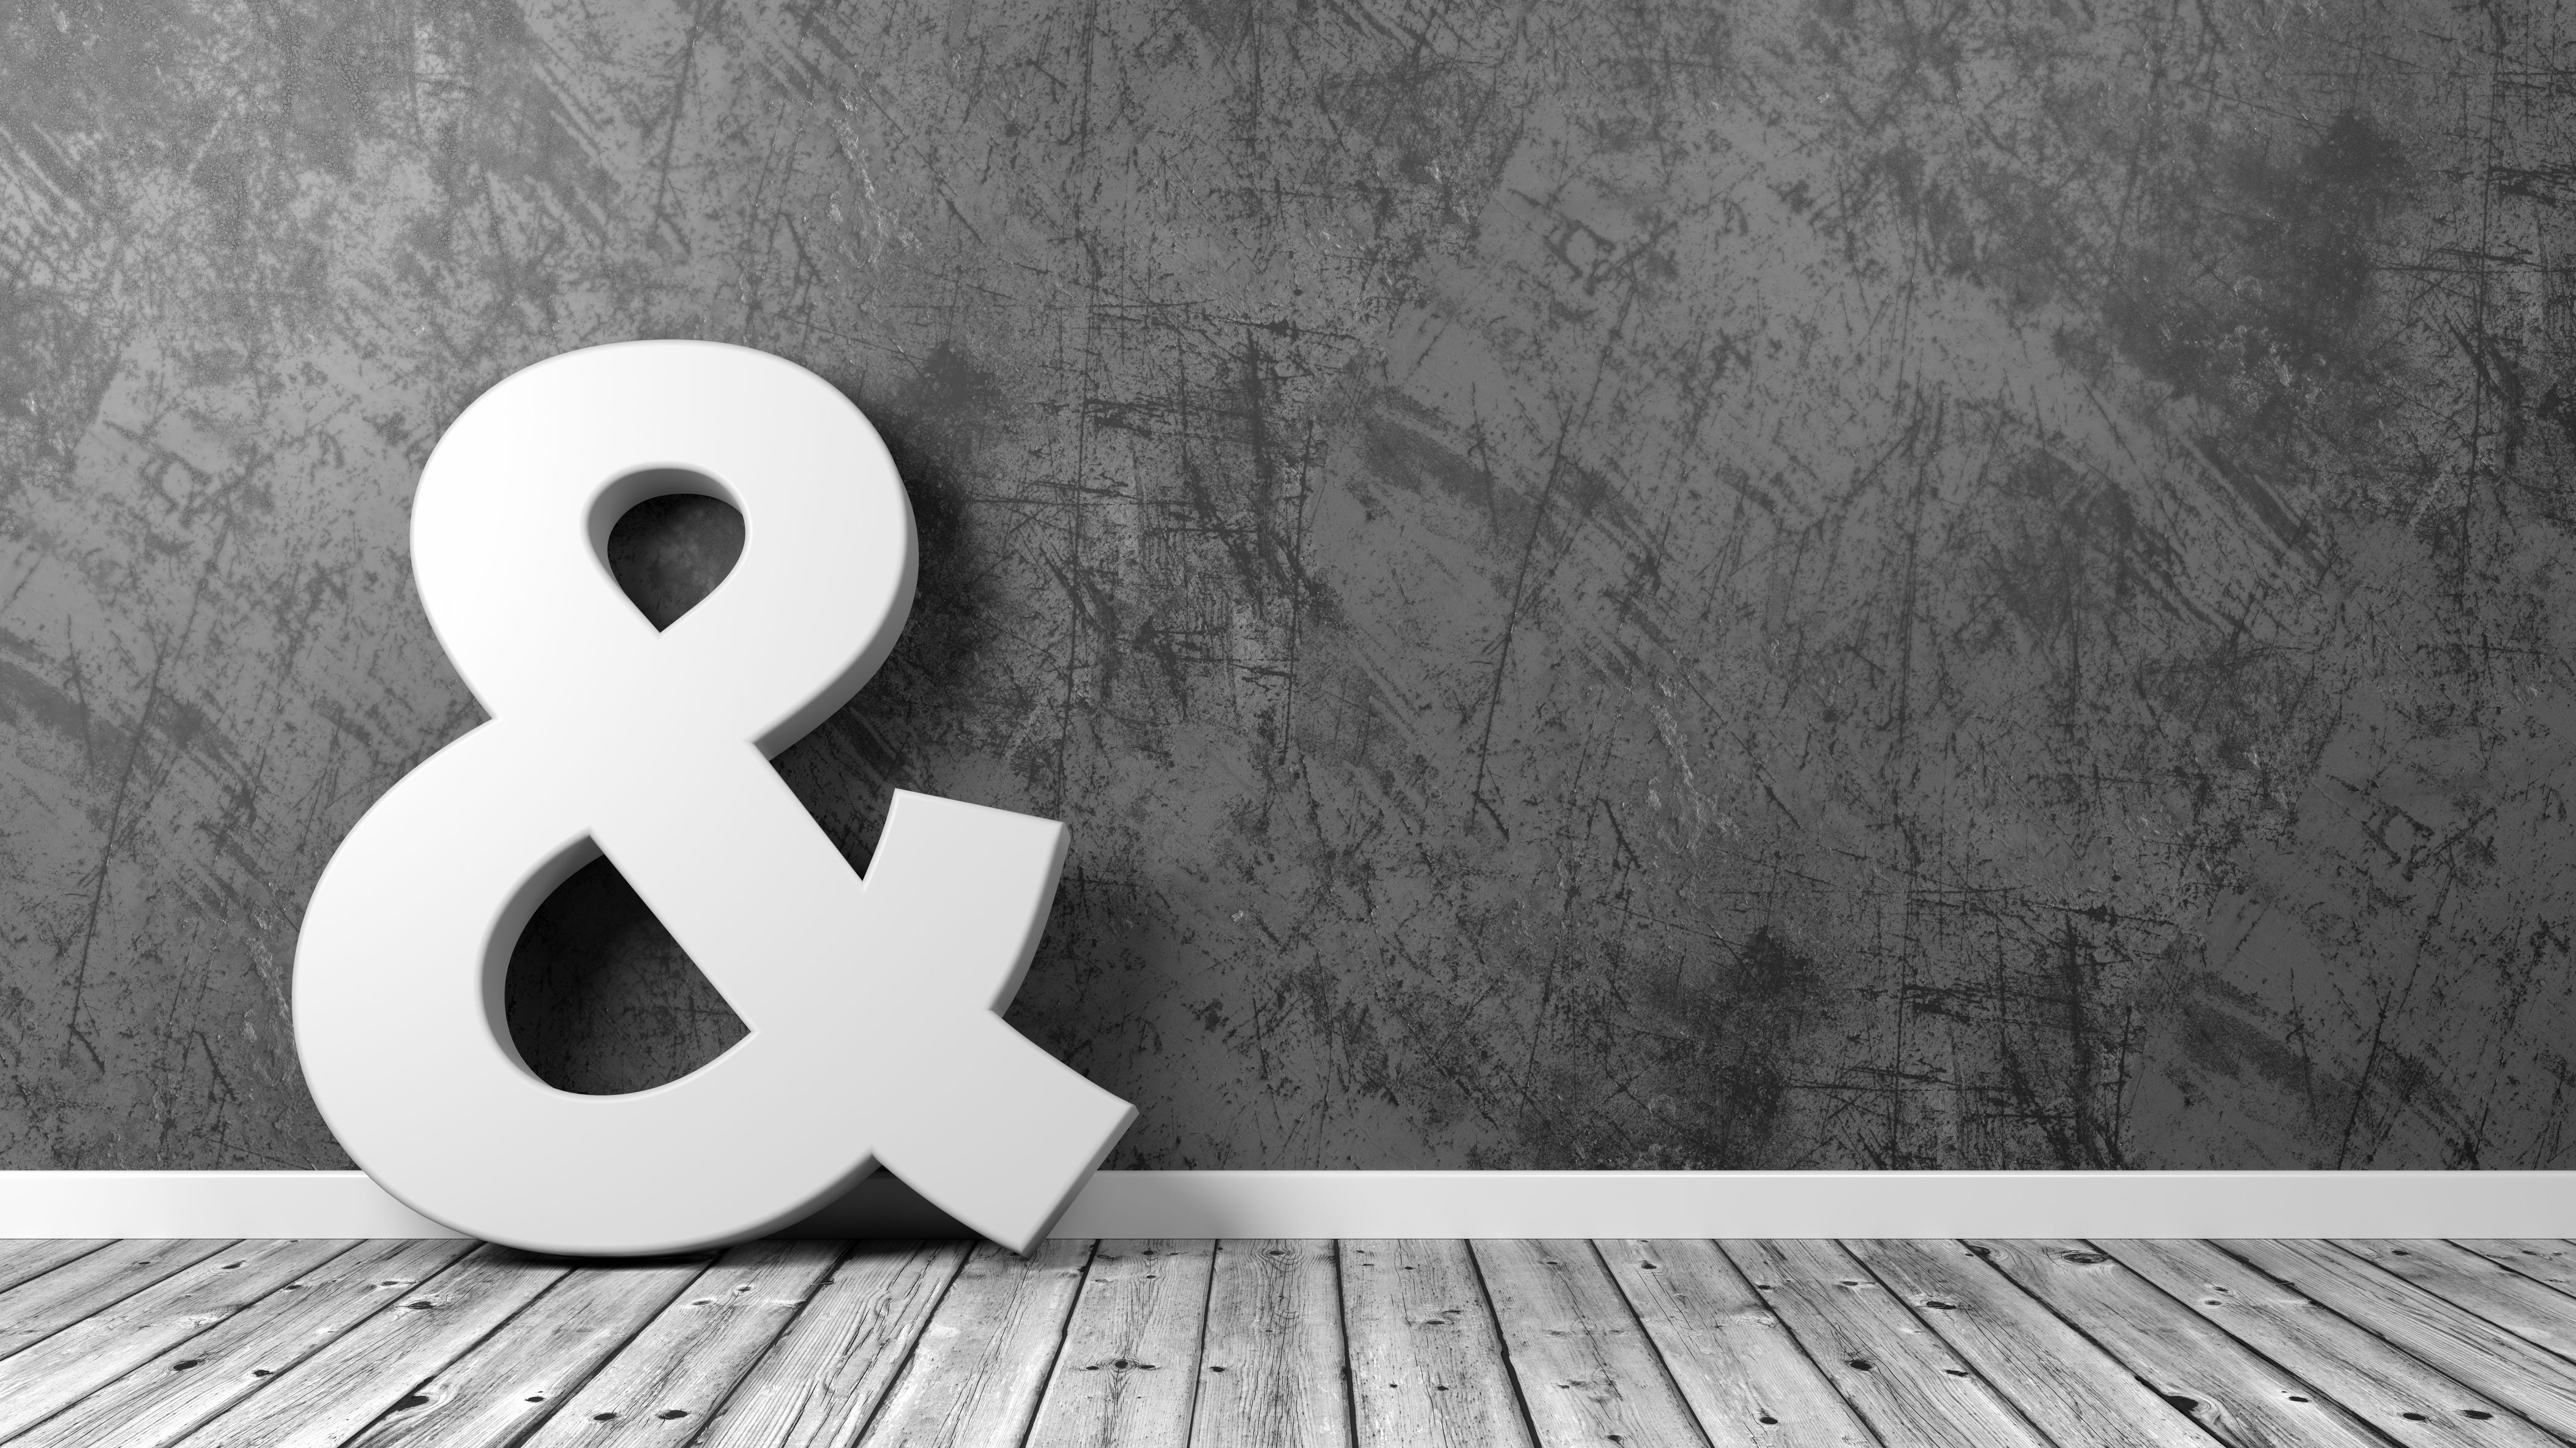 What Is An Ampersand Symbol And How Is It Used?